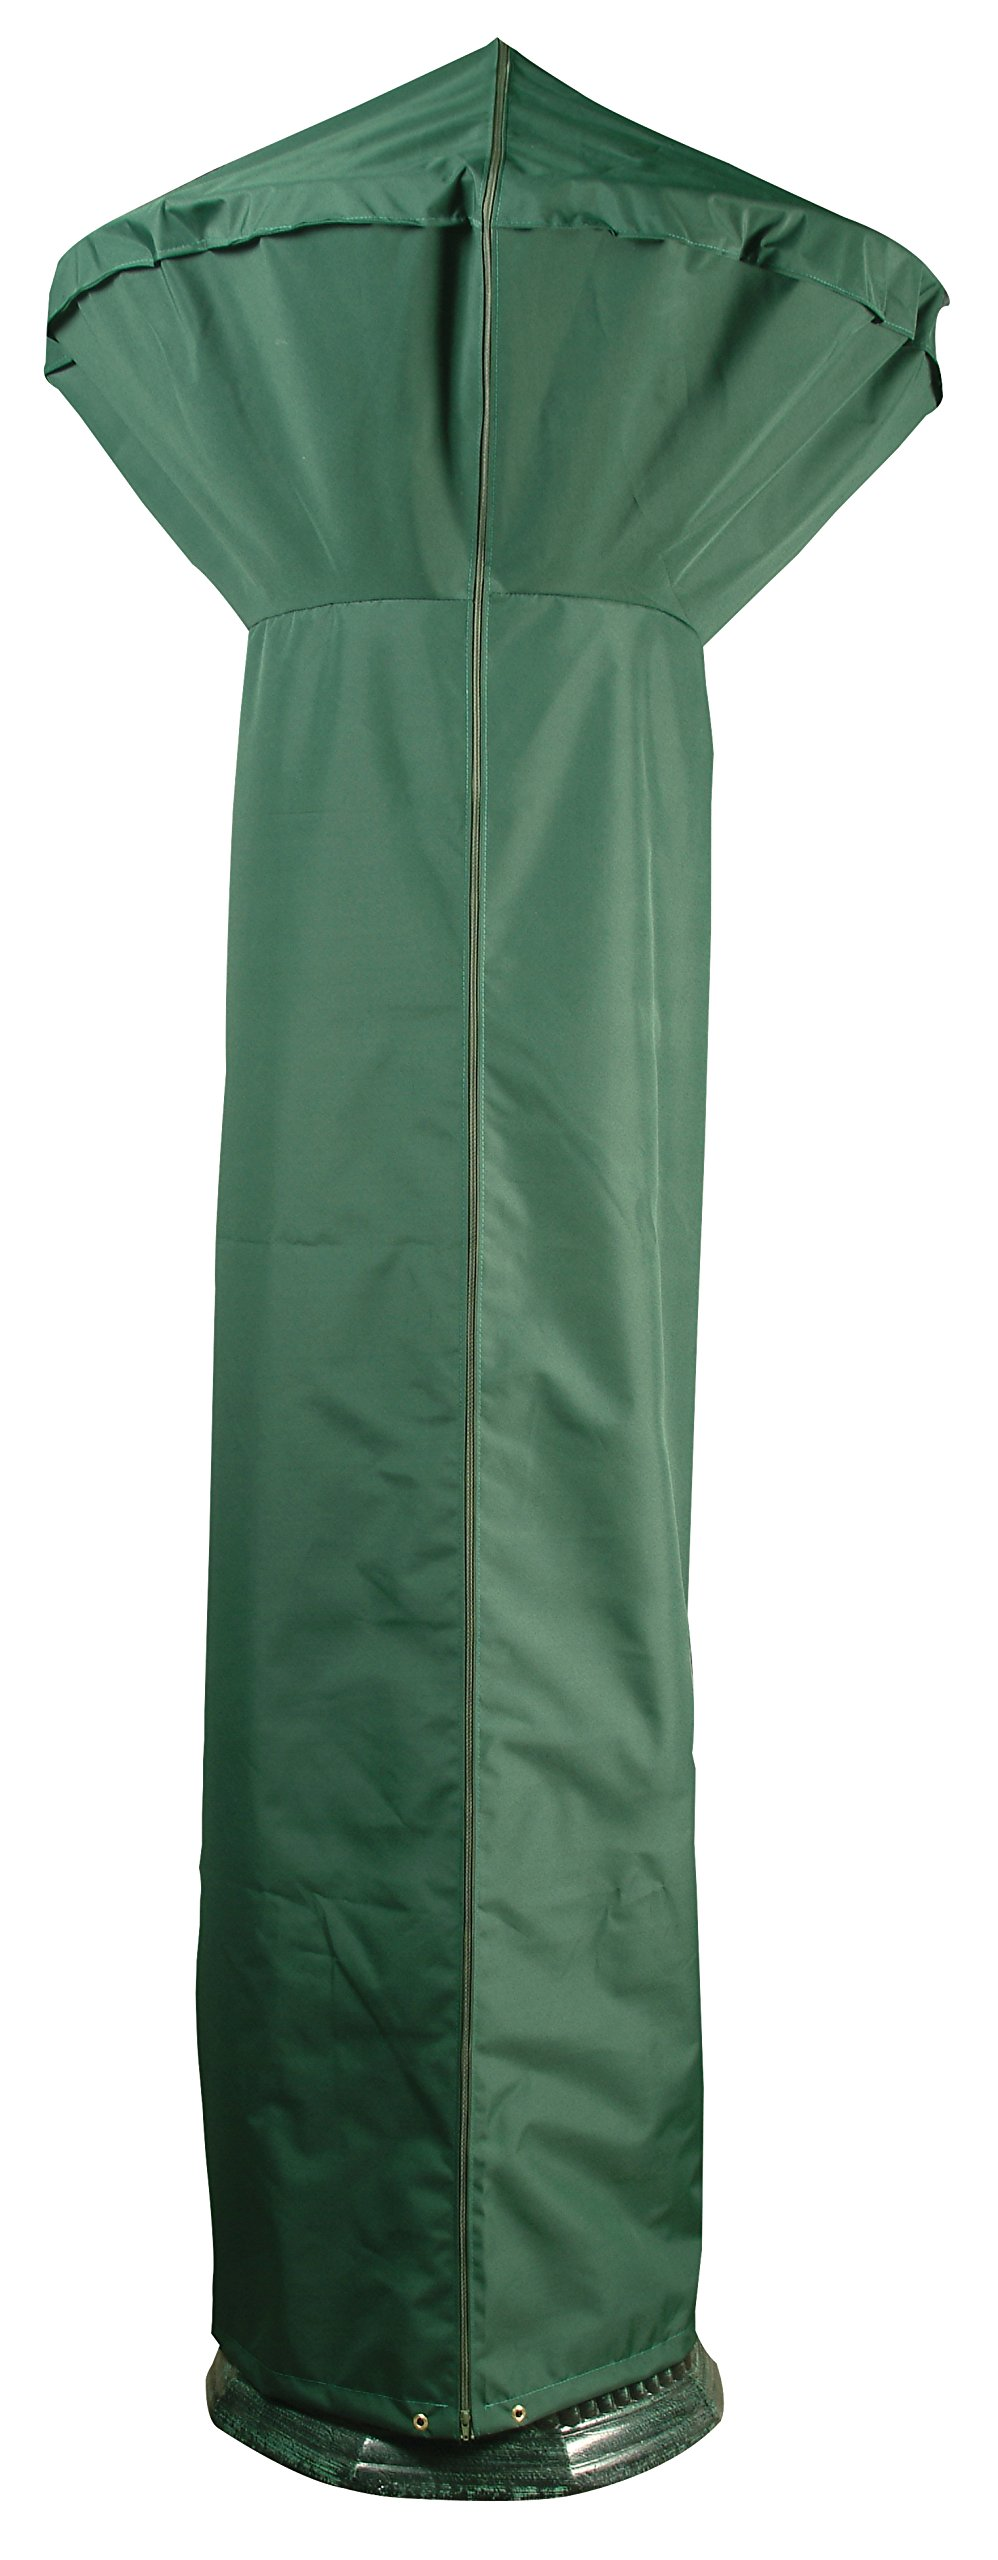 Bosmere C745 Patio Heater Cover 84-Inch High by Bosmere